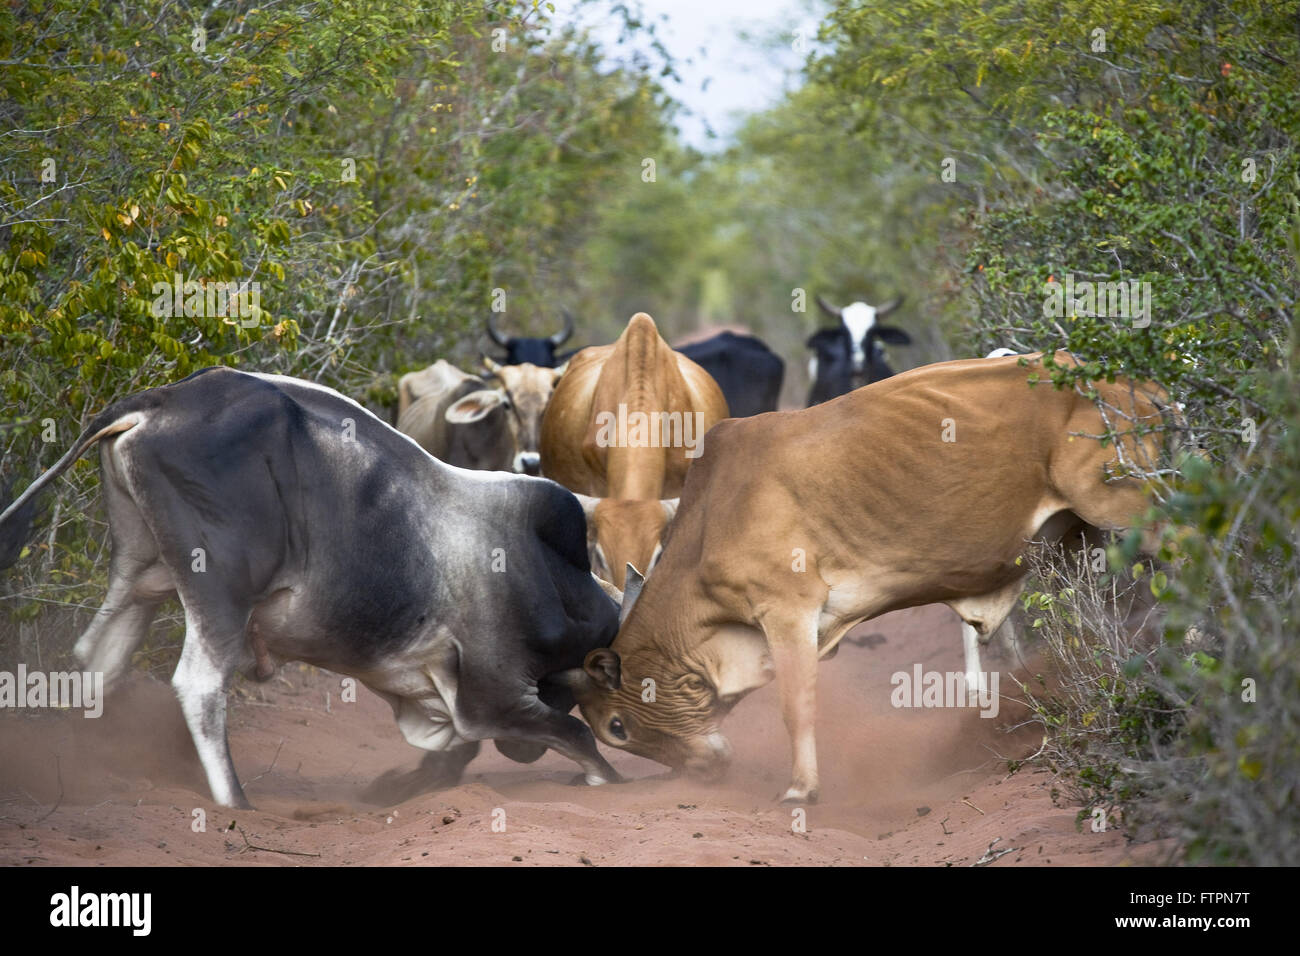 Dispute between oxen on dirt road Ecological Station of Raso da Catarina - Stock Image